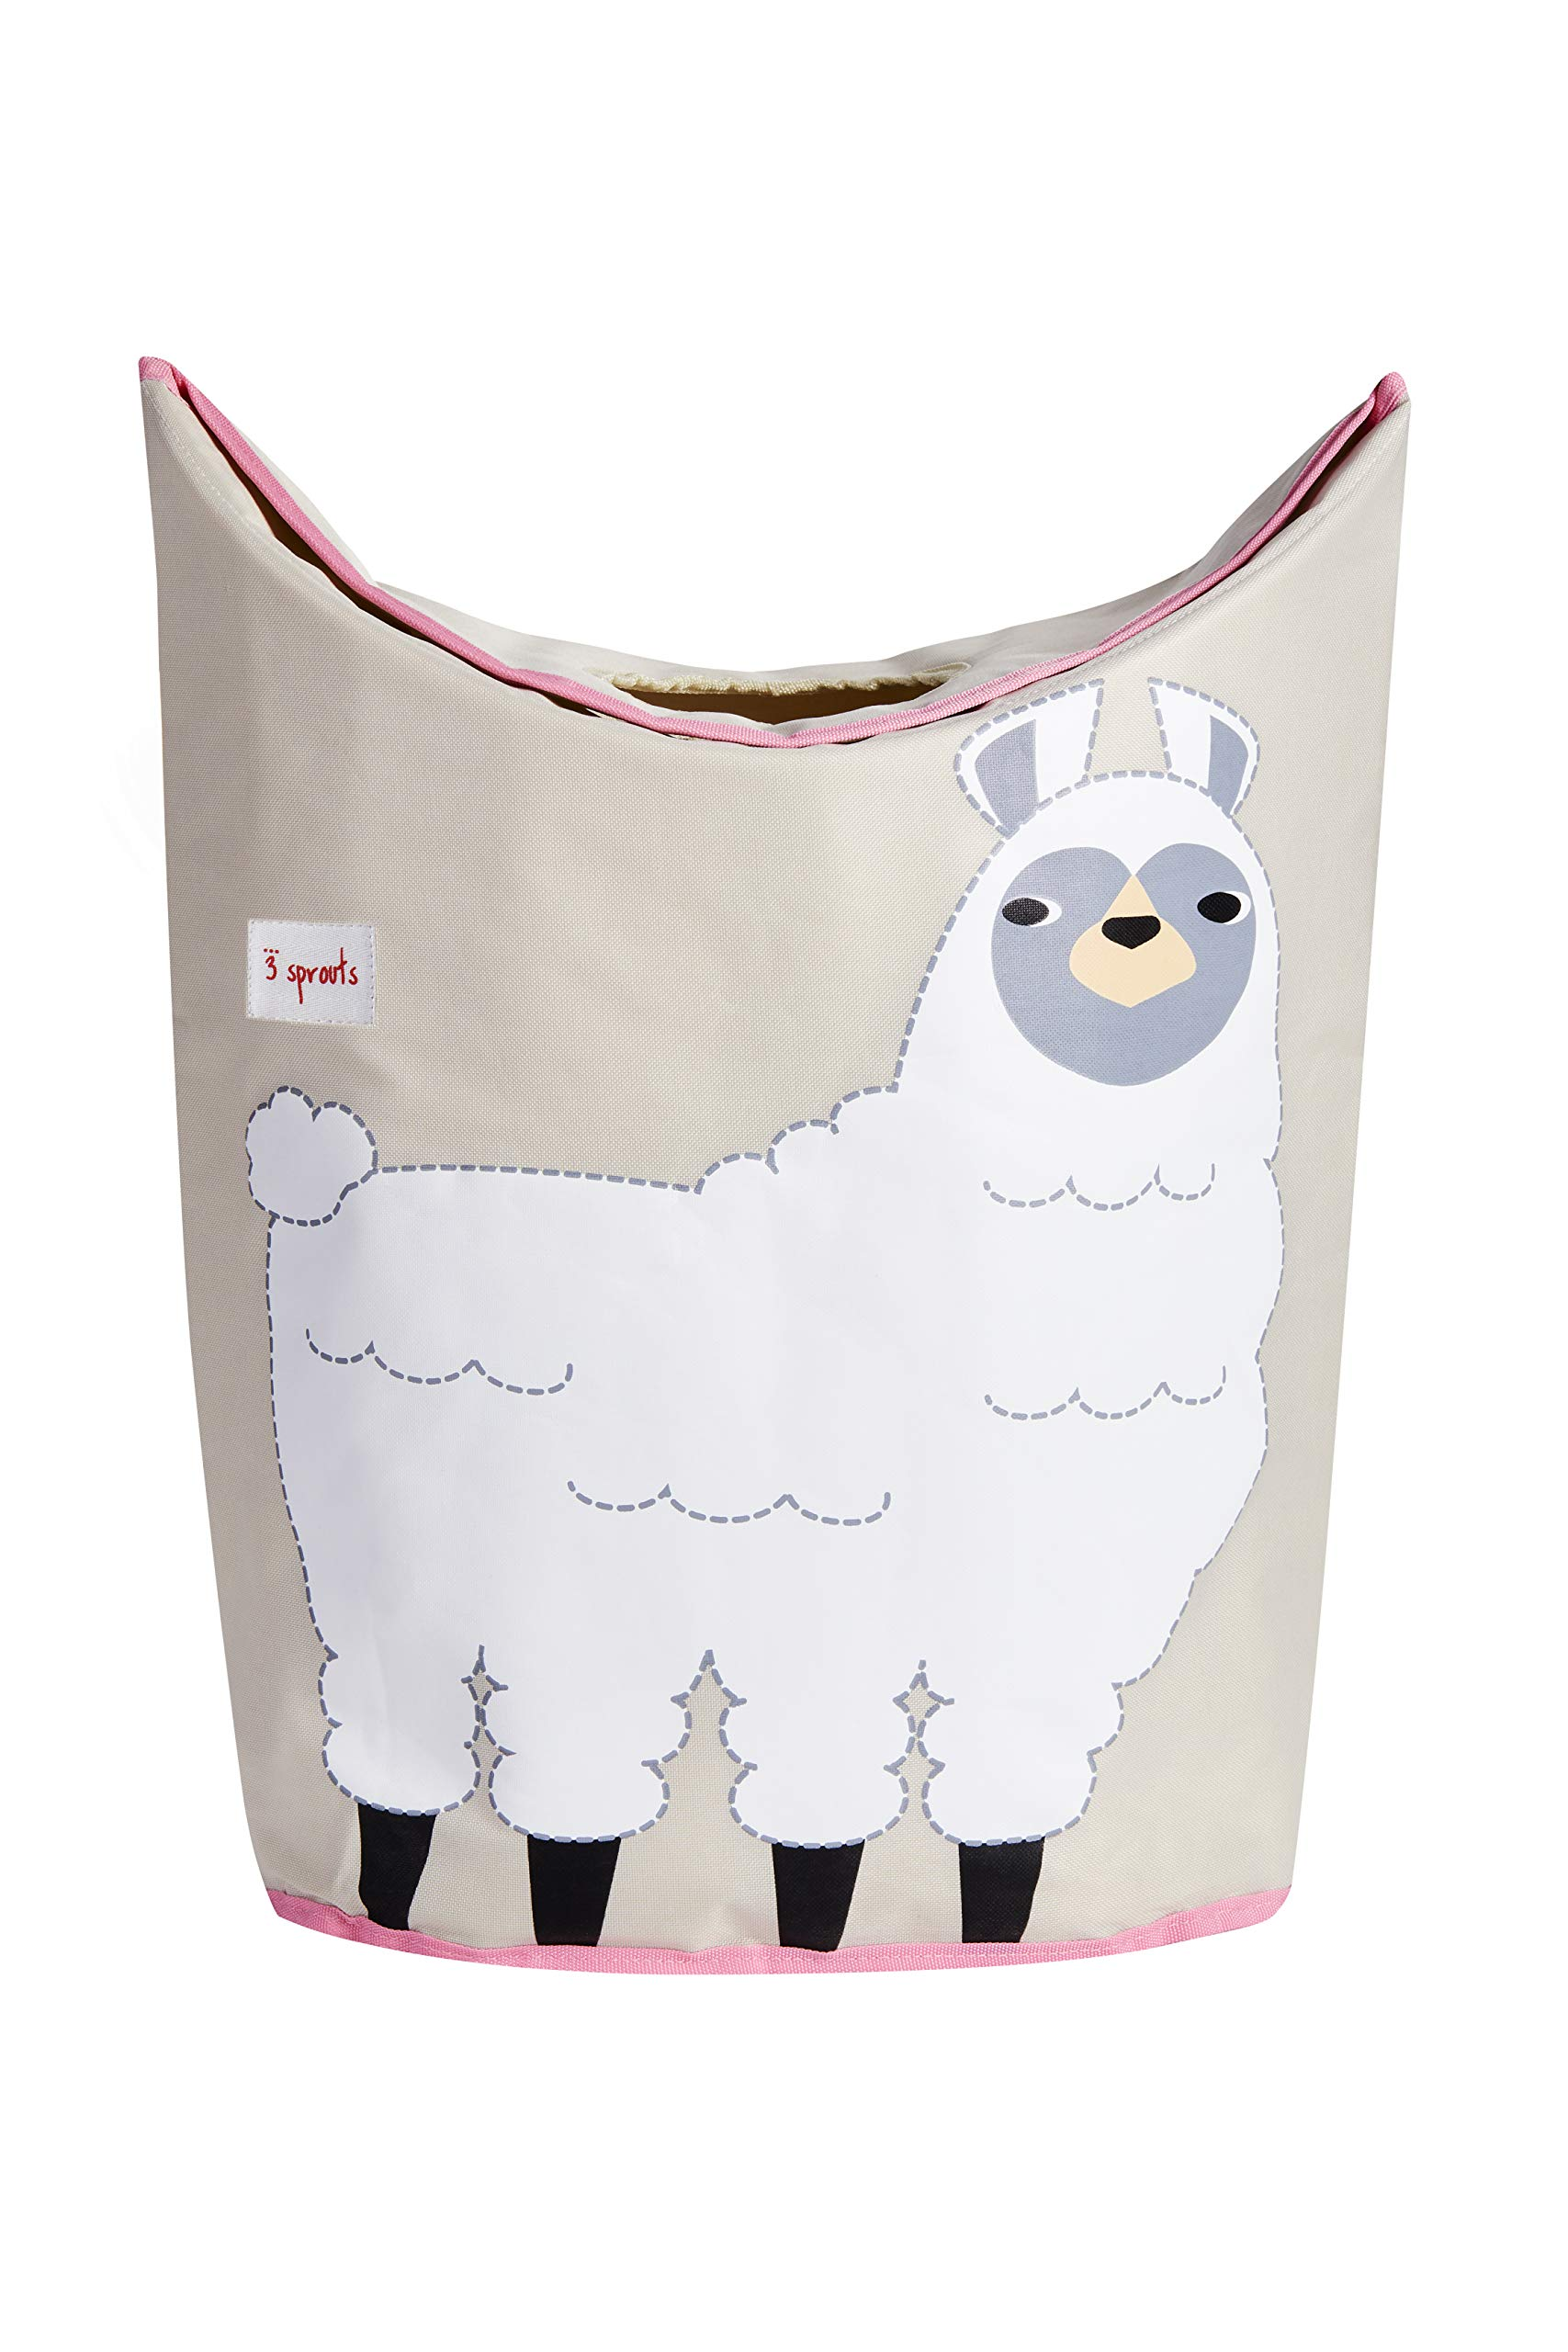 3 Sprouts 3 Sprouts Laundry Hamper - Baby Storage Basket Organizer Bin for Nursery Clothes, Llama by 3 Sprouts